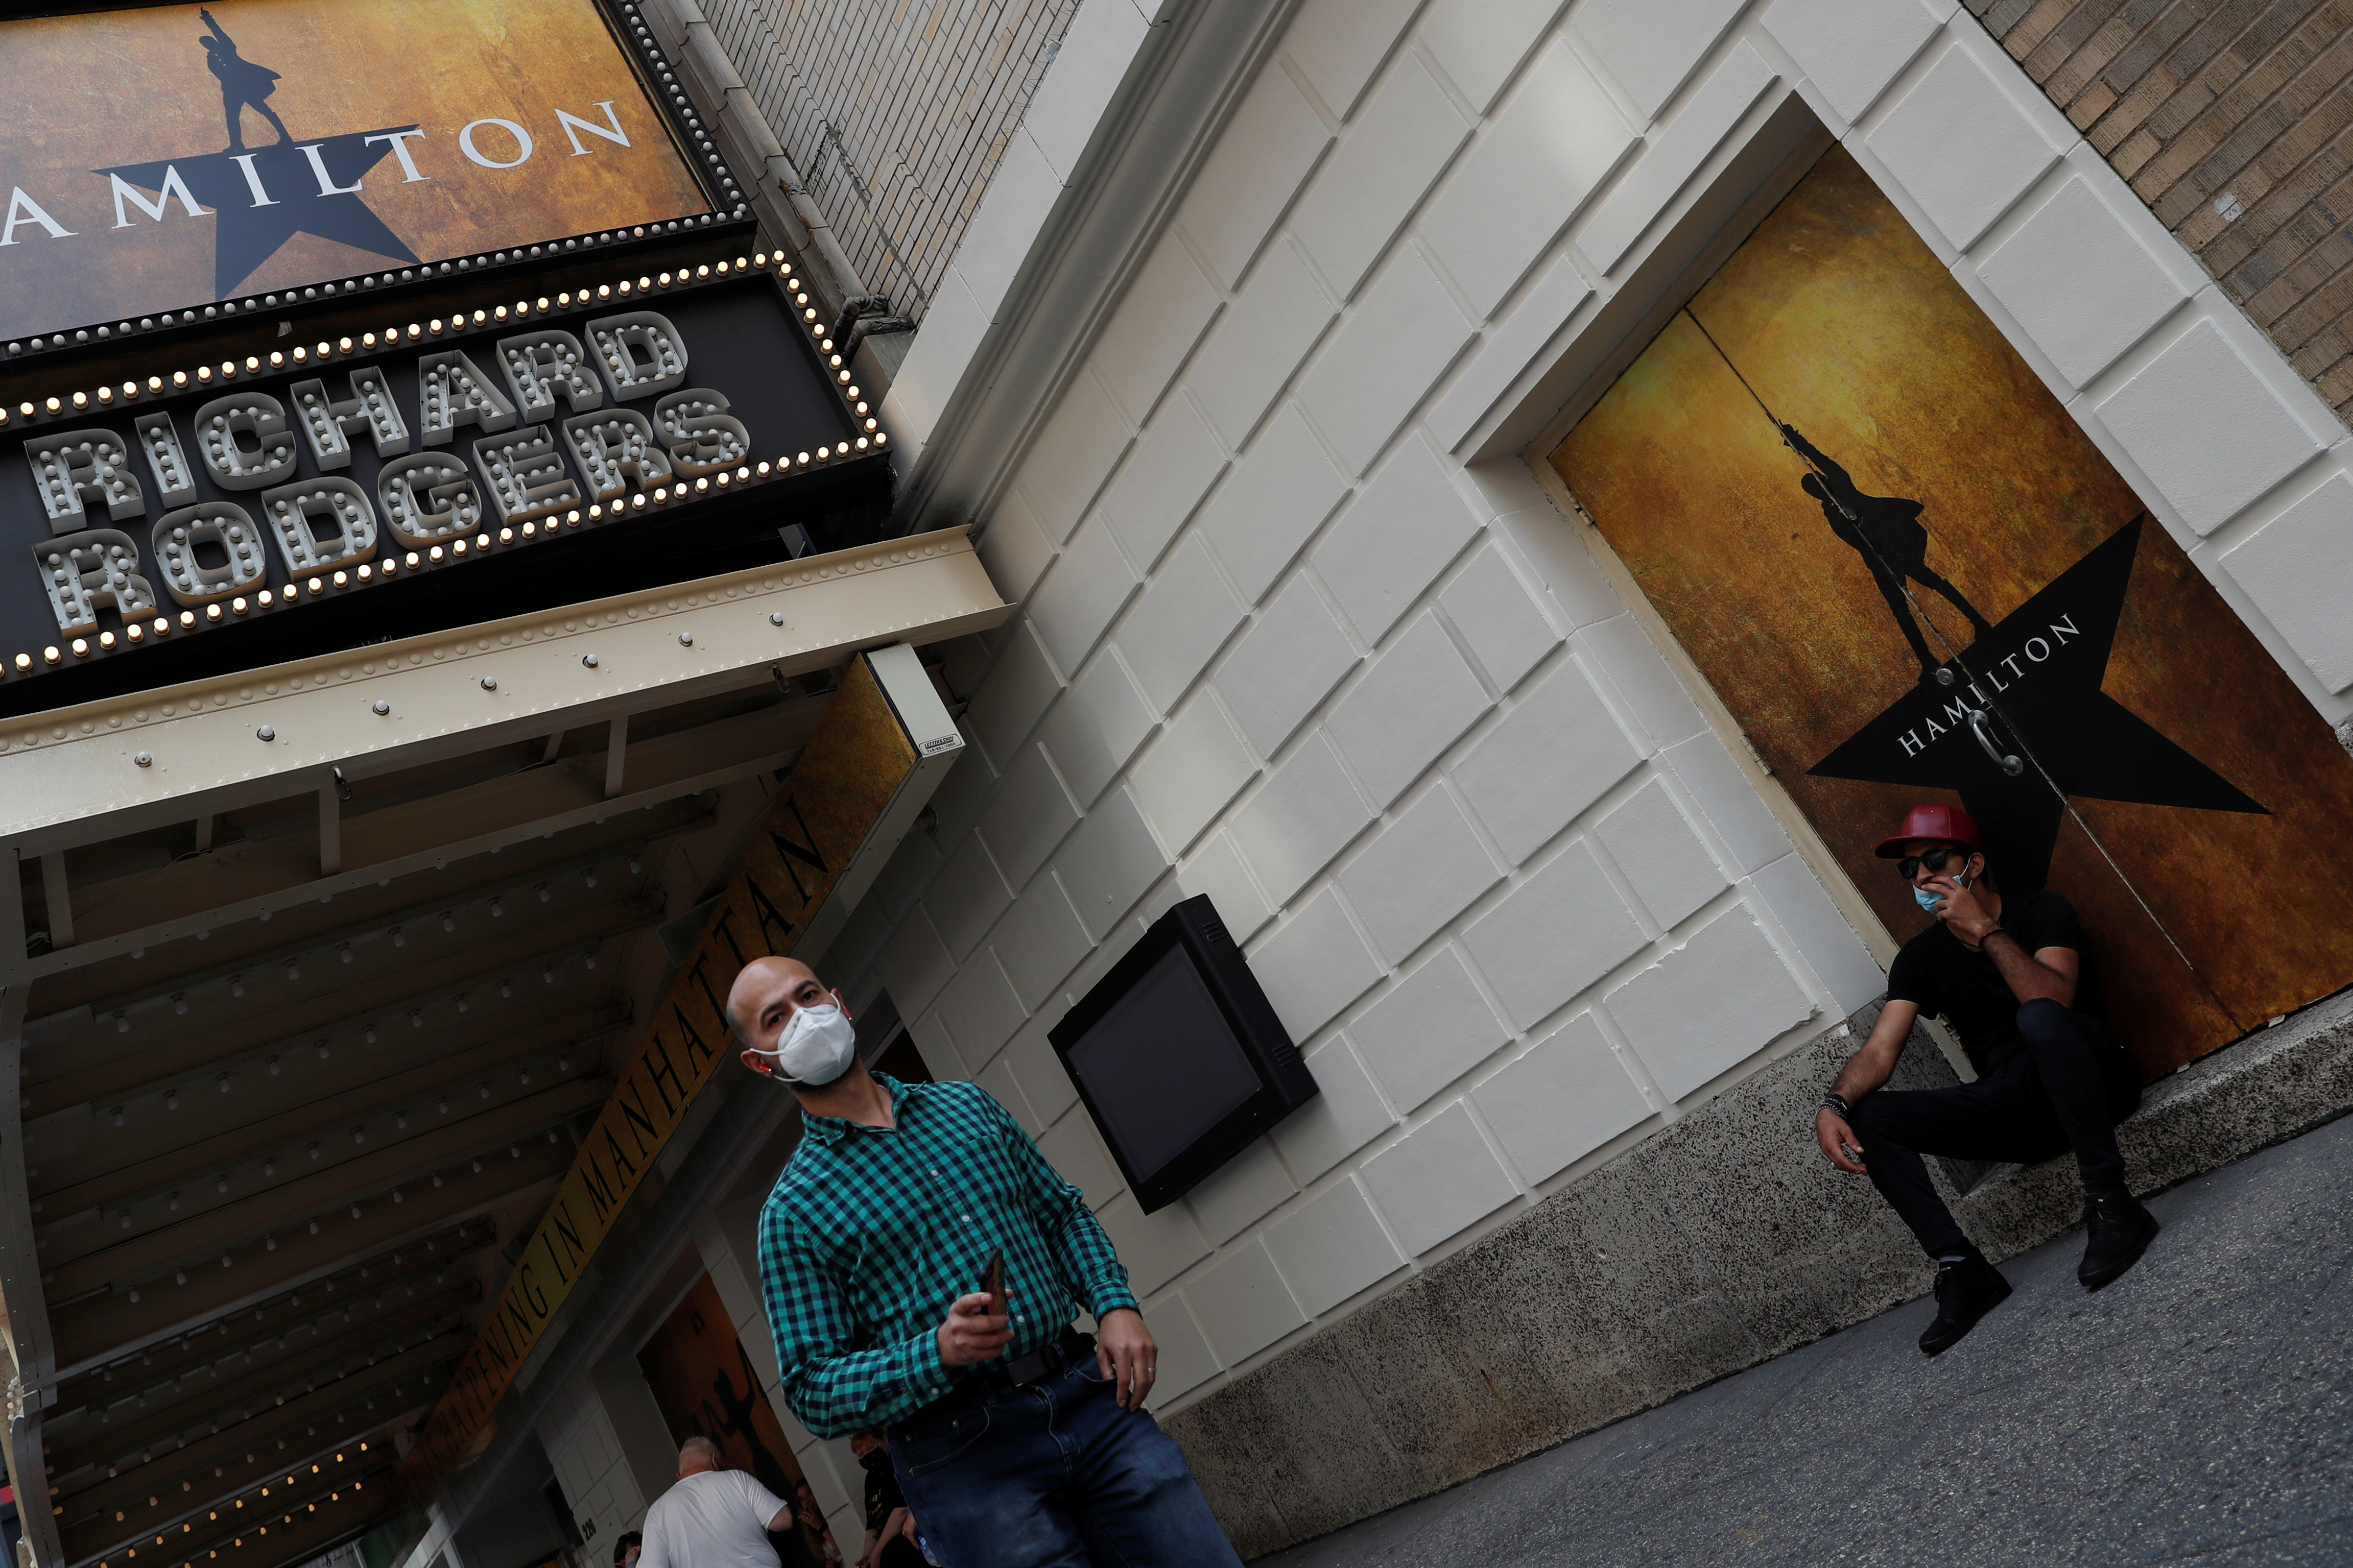 """A man walks wearing a protective face mask past the marquee for the Broadway show """"Hamilton"""" in the Times Square area of Manhattan, New York City, U.S., September 14, 2021.  REUTERS/Shannon Stapleton"""